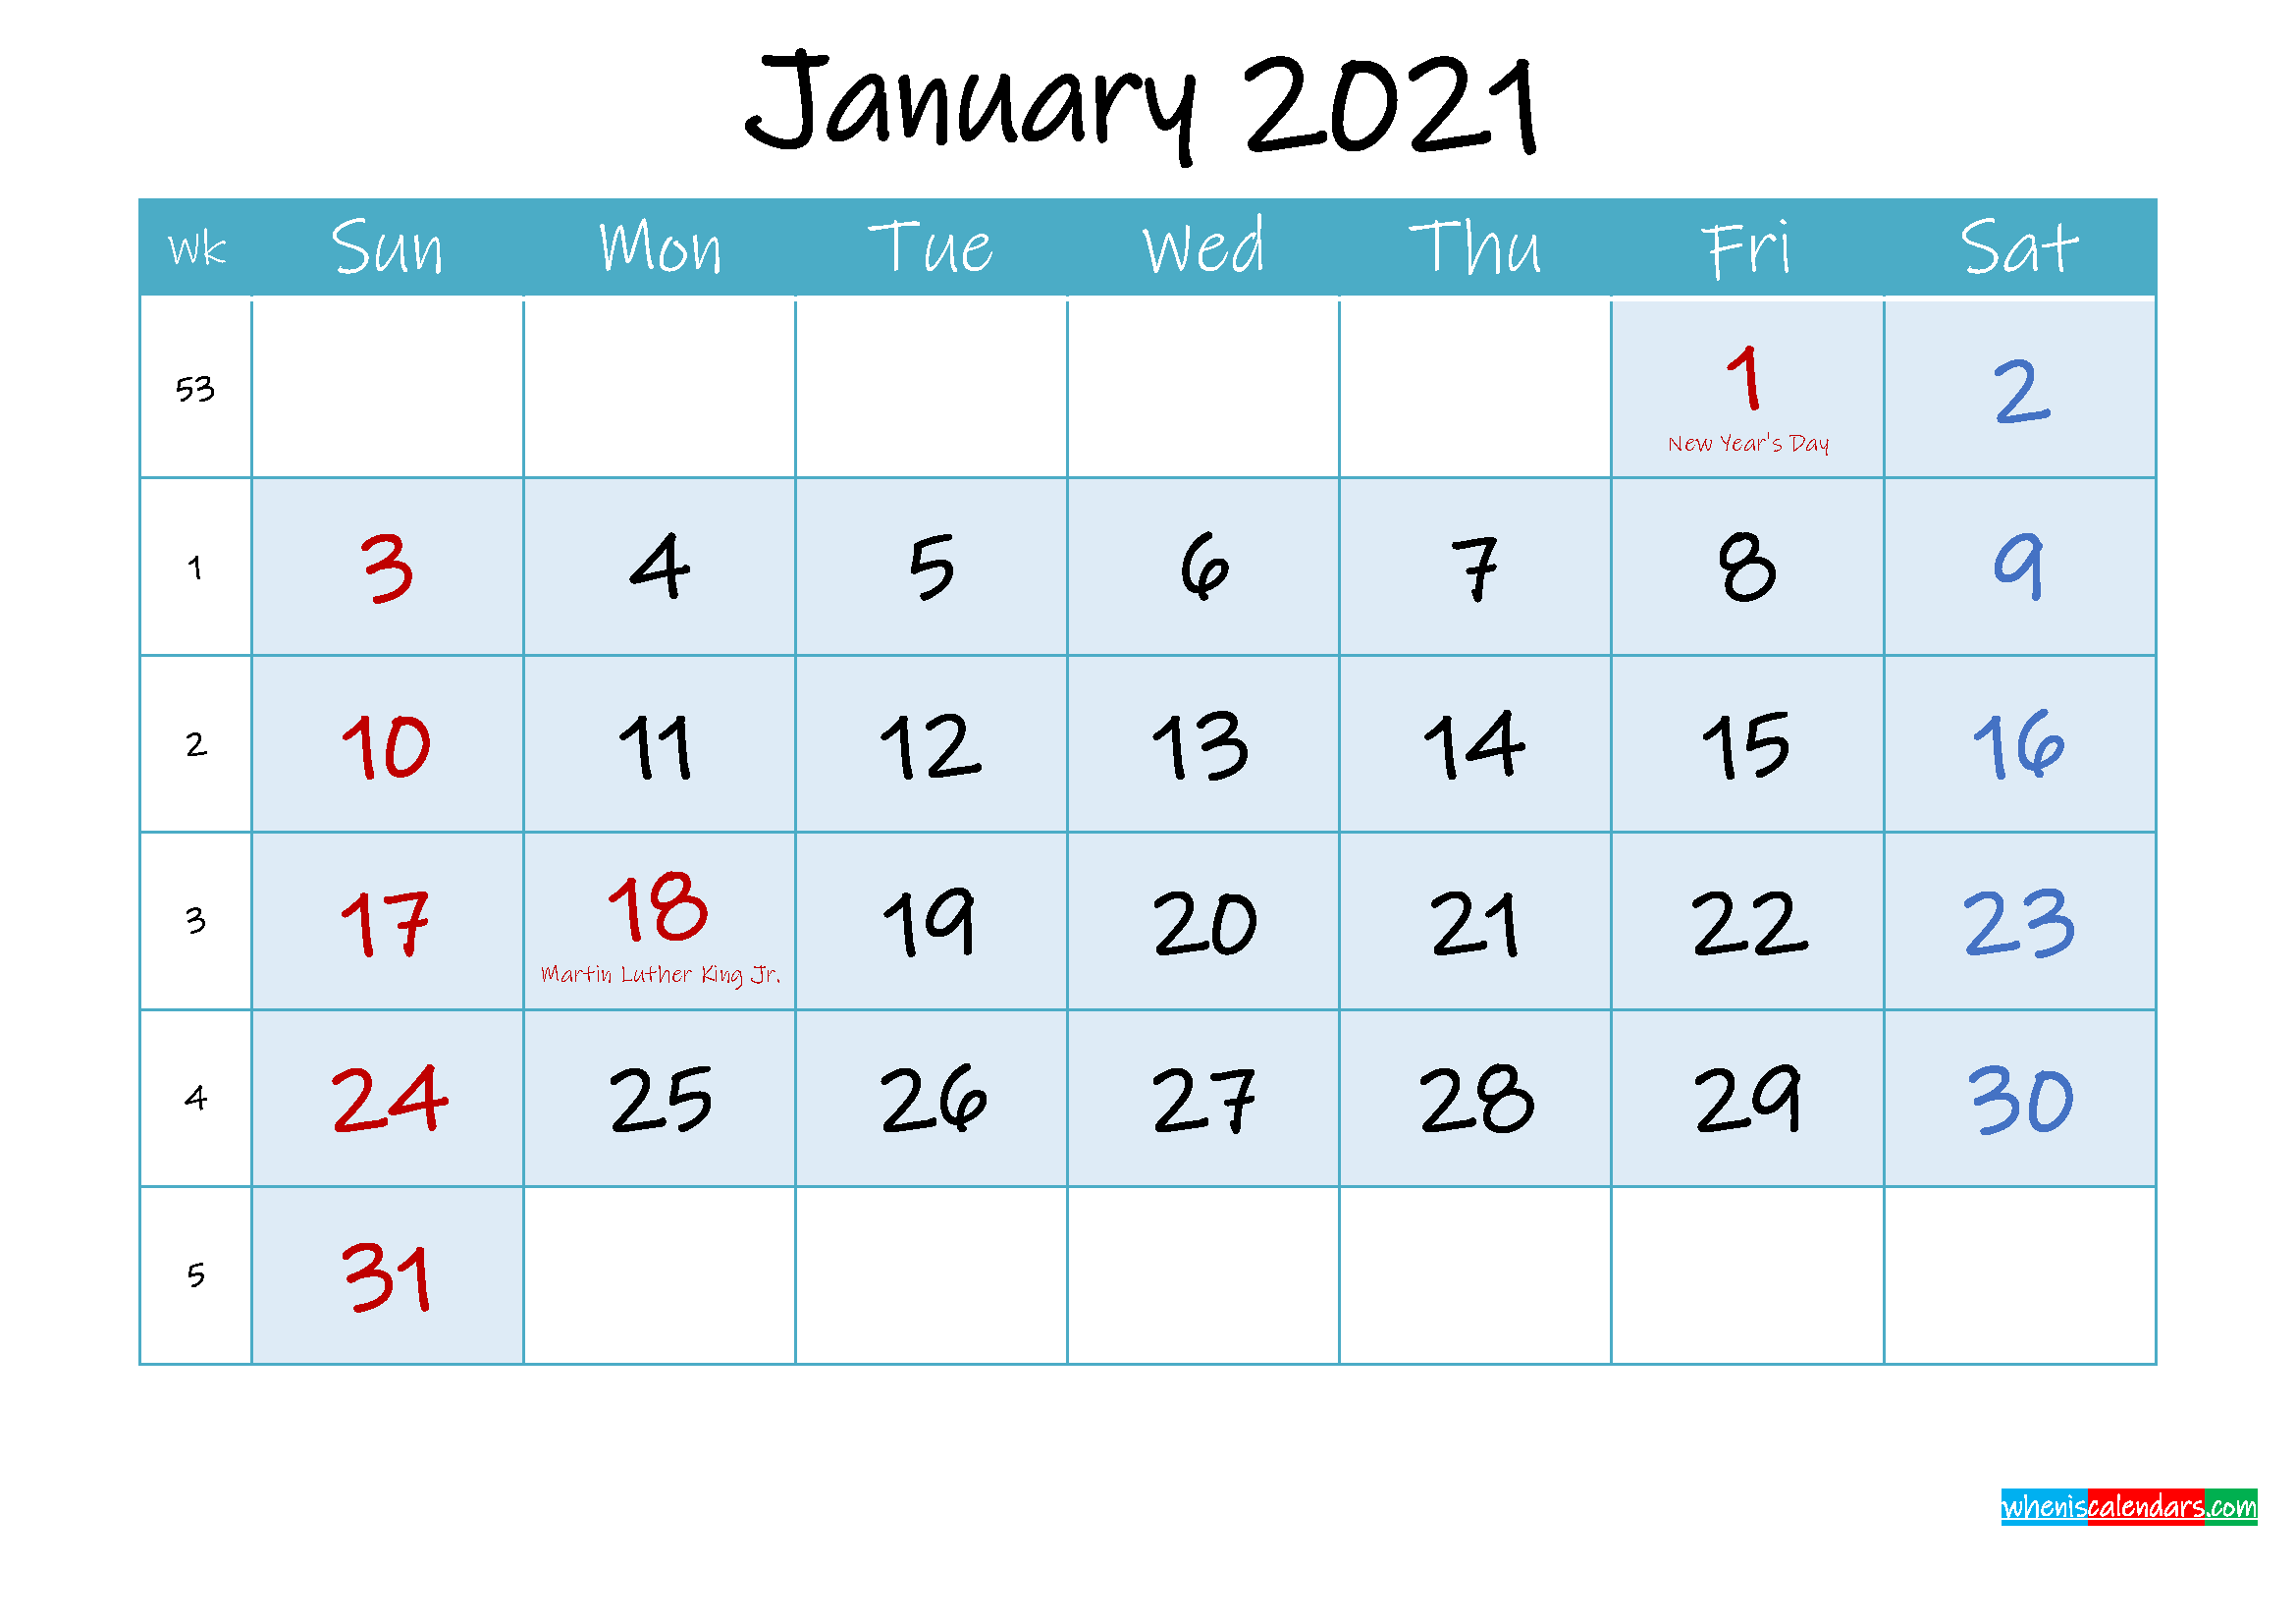 January 2021 Free Printable Calendar with Holidays